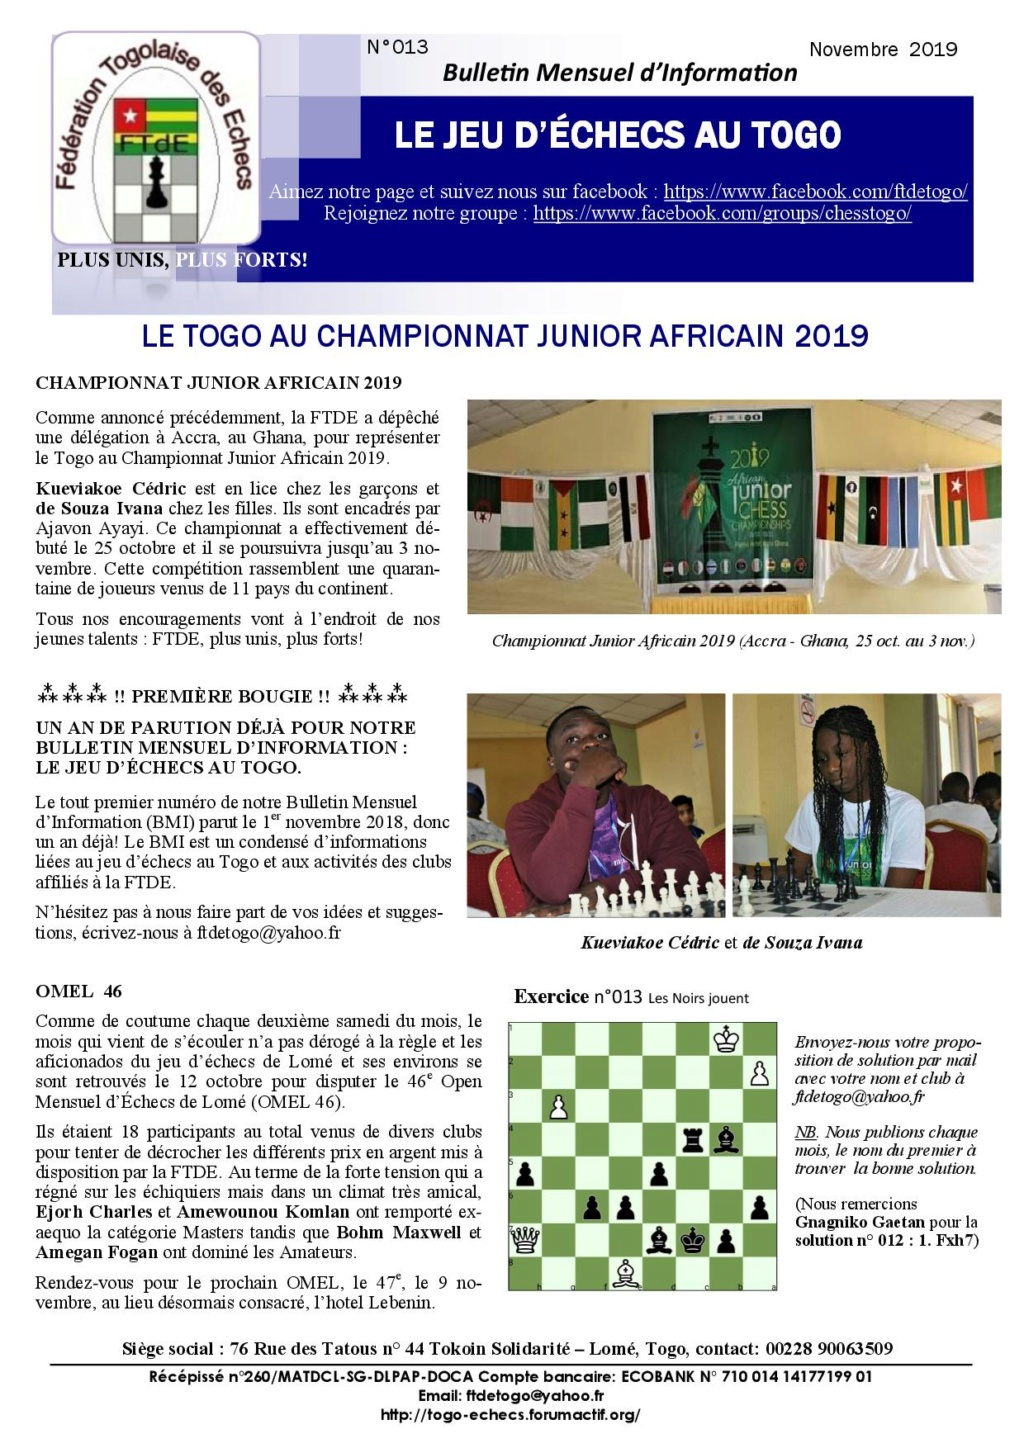 Le Bulletin Mensuel d'Information n° 013 nov 2019 Bmi_ft21